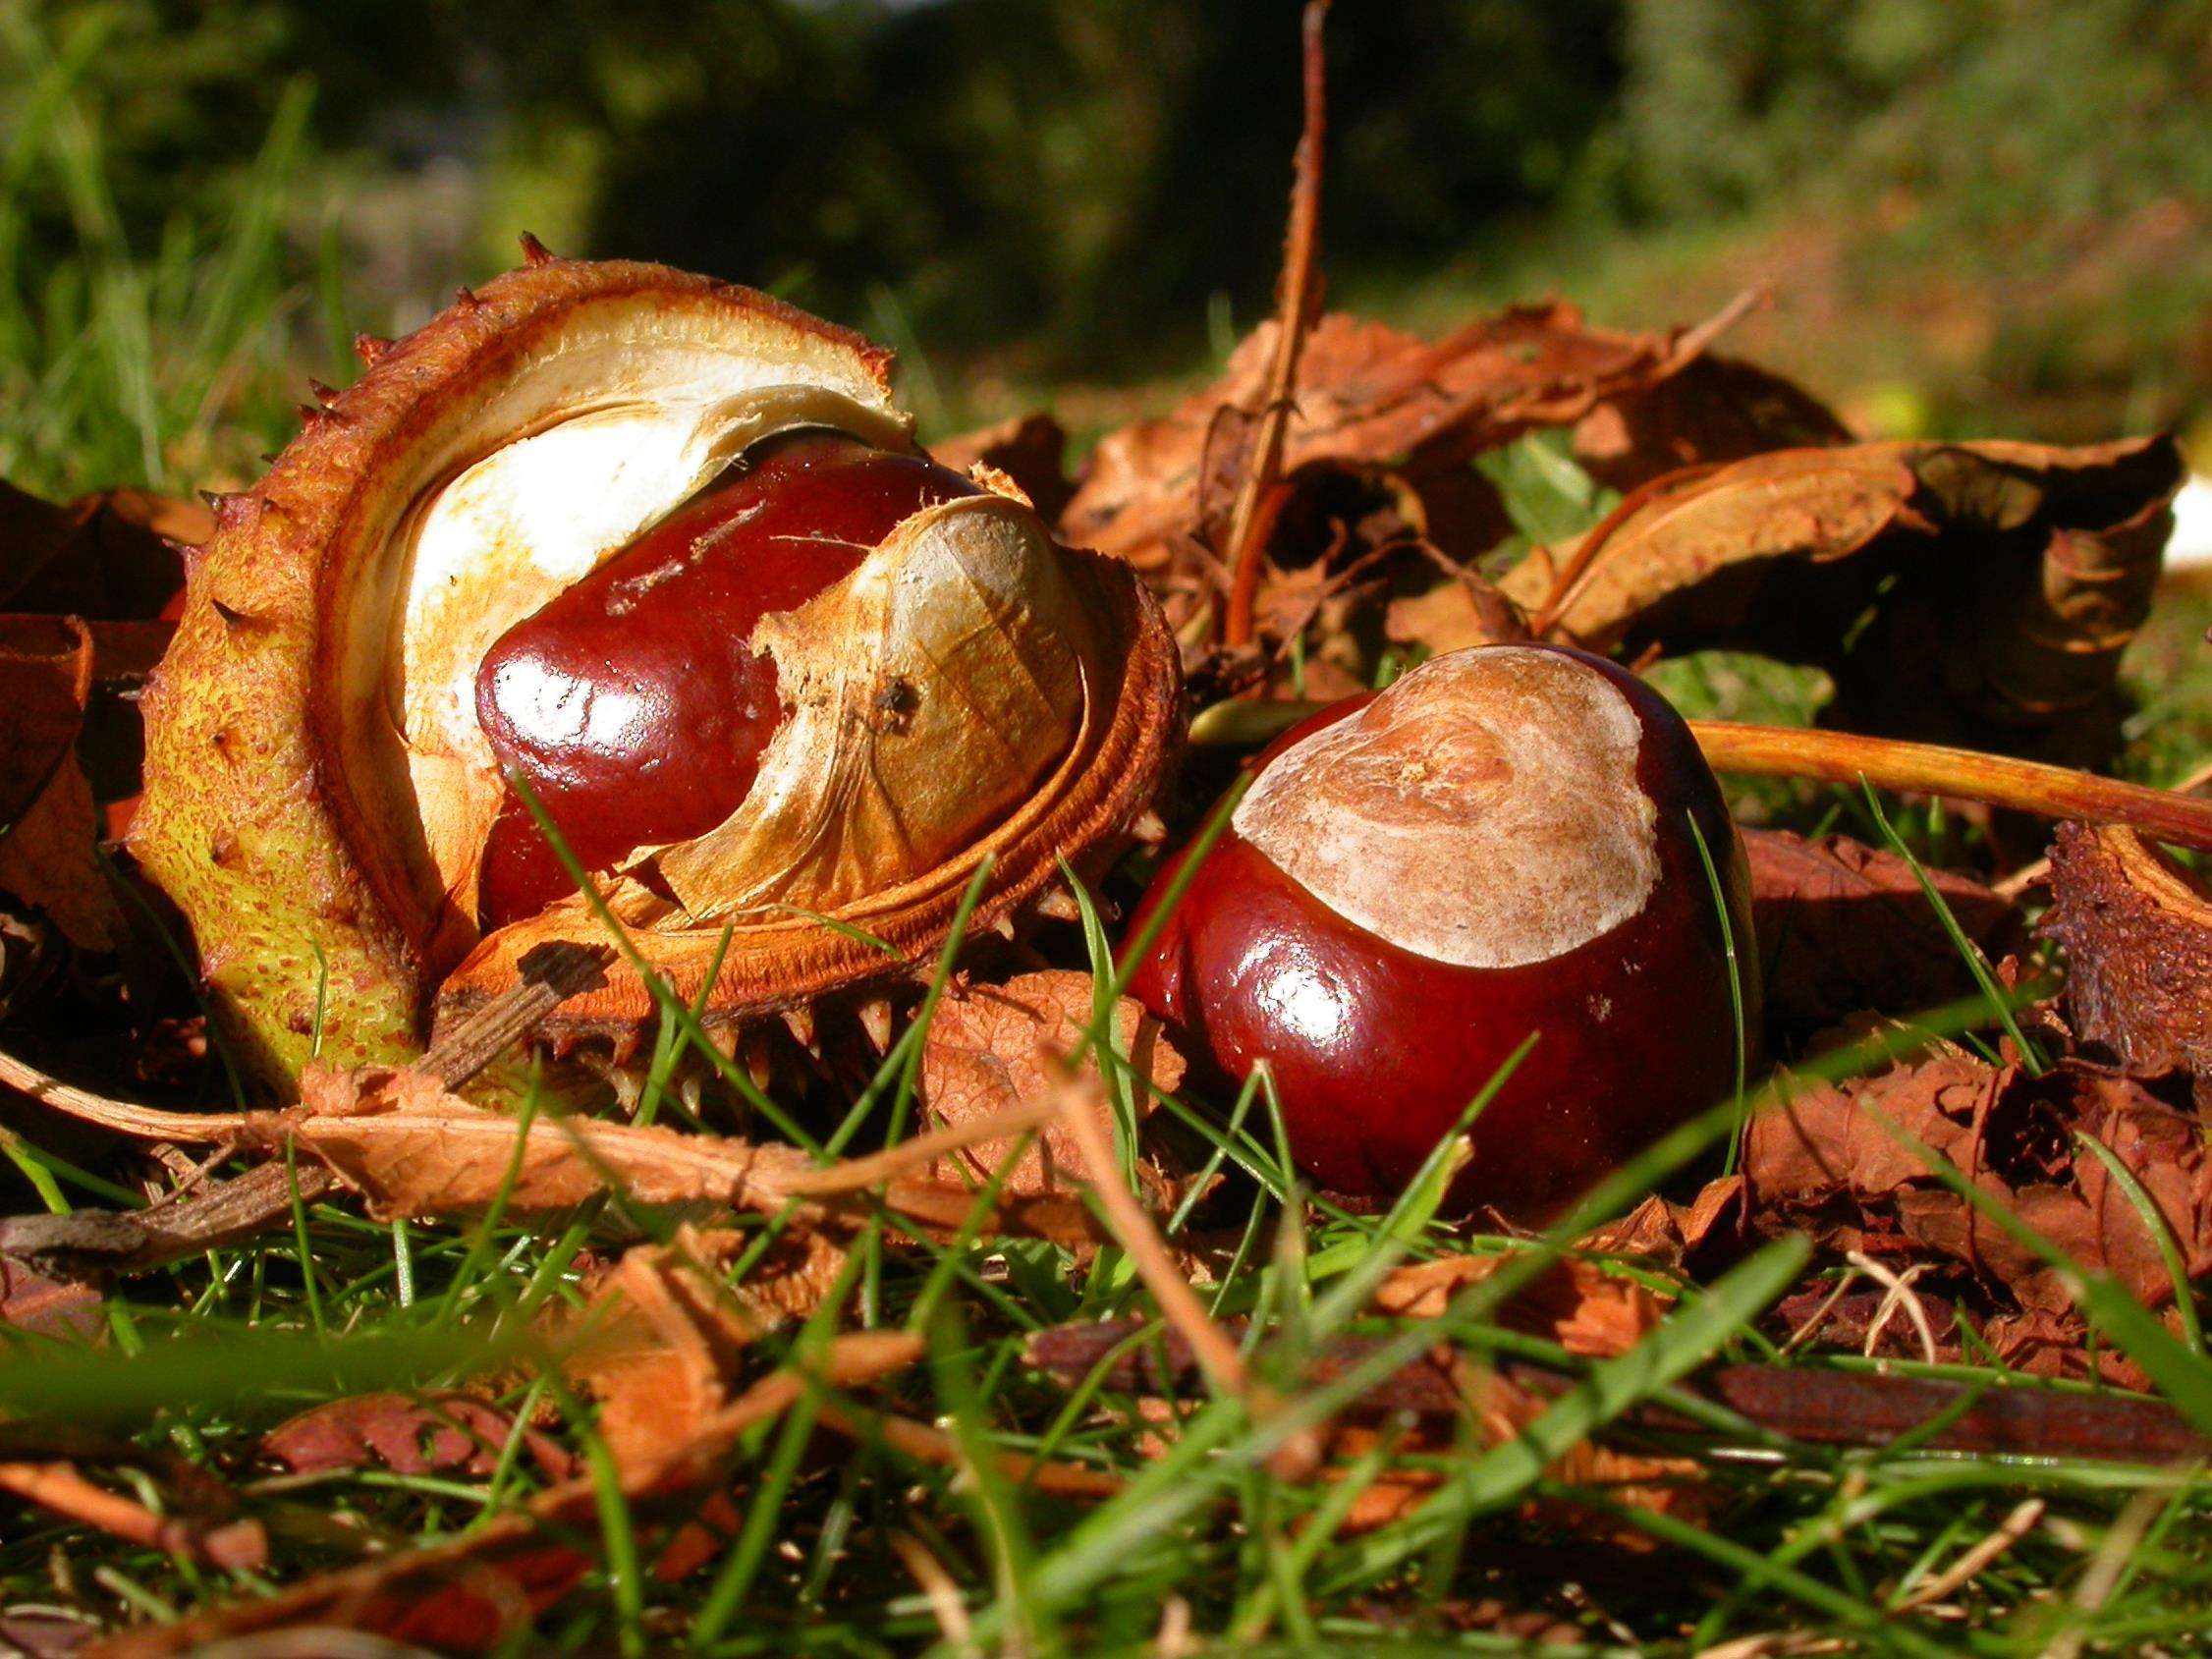 The heatwave has affected the number of conkers